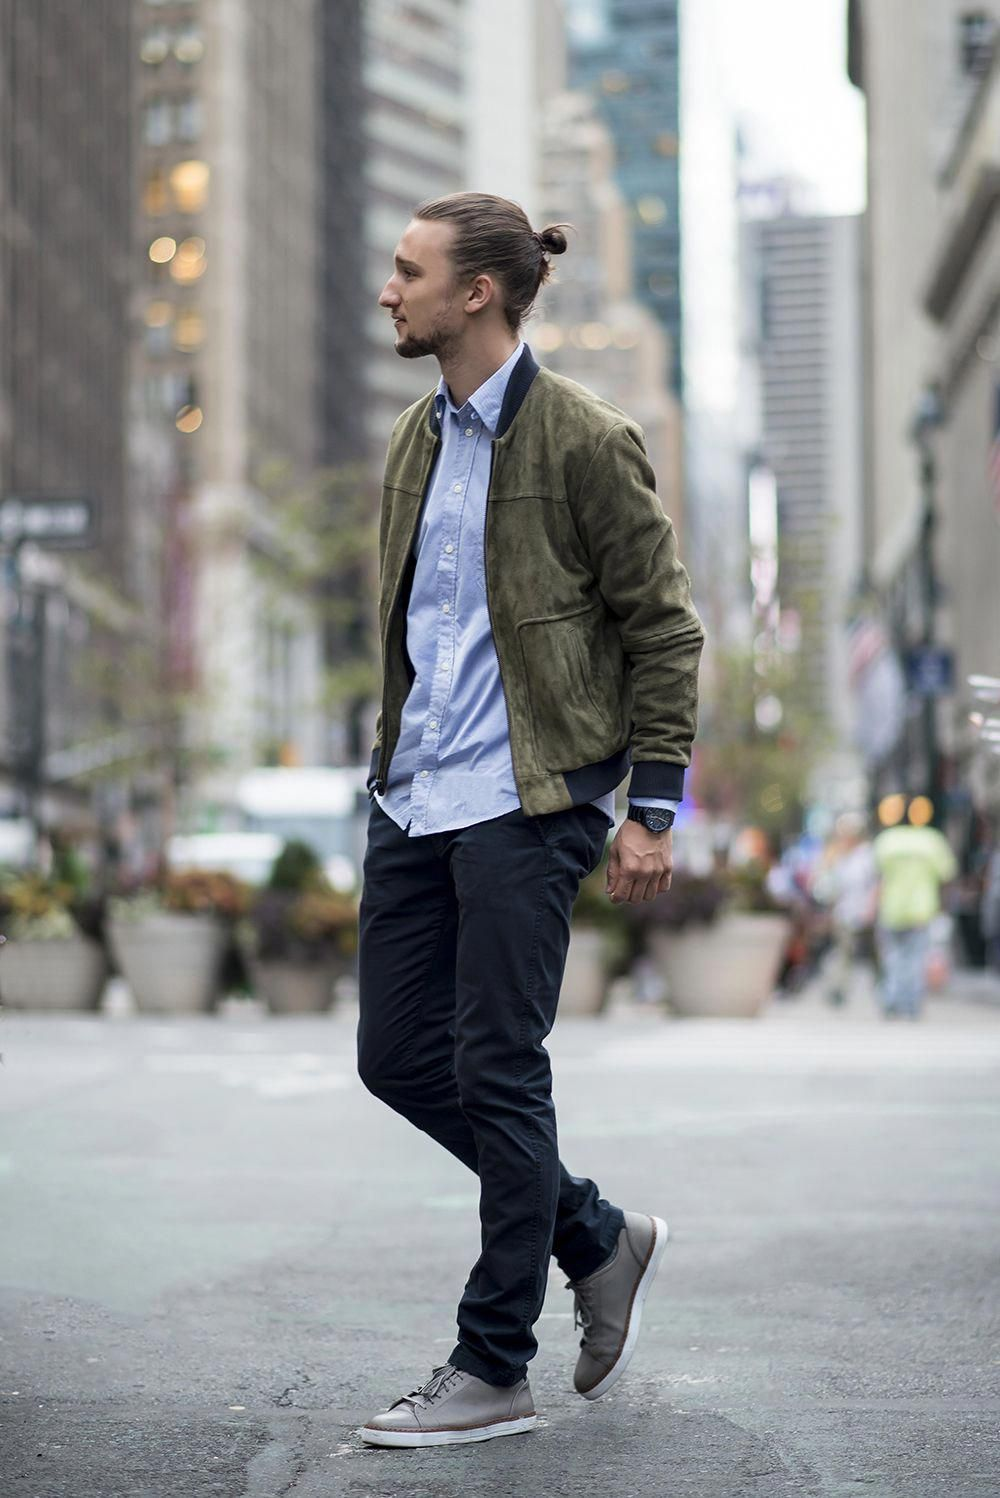 leatherjacketsformenblue | Sneakers outfit men, Olive bomber